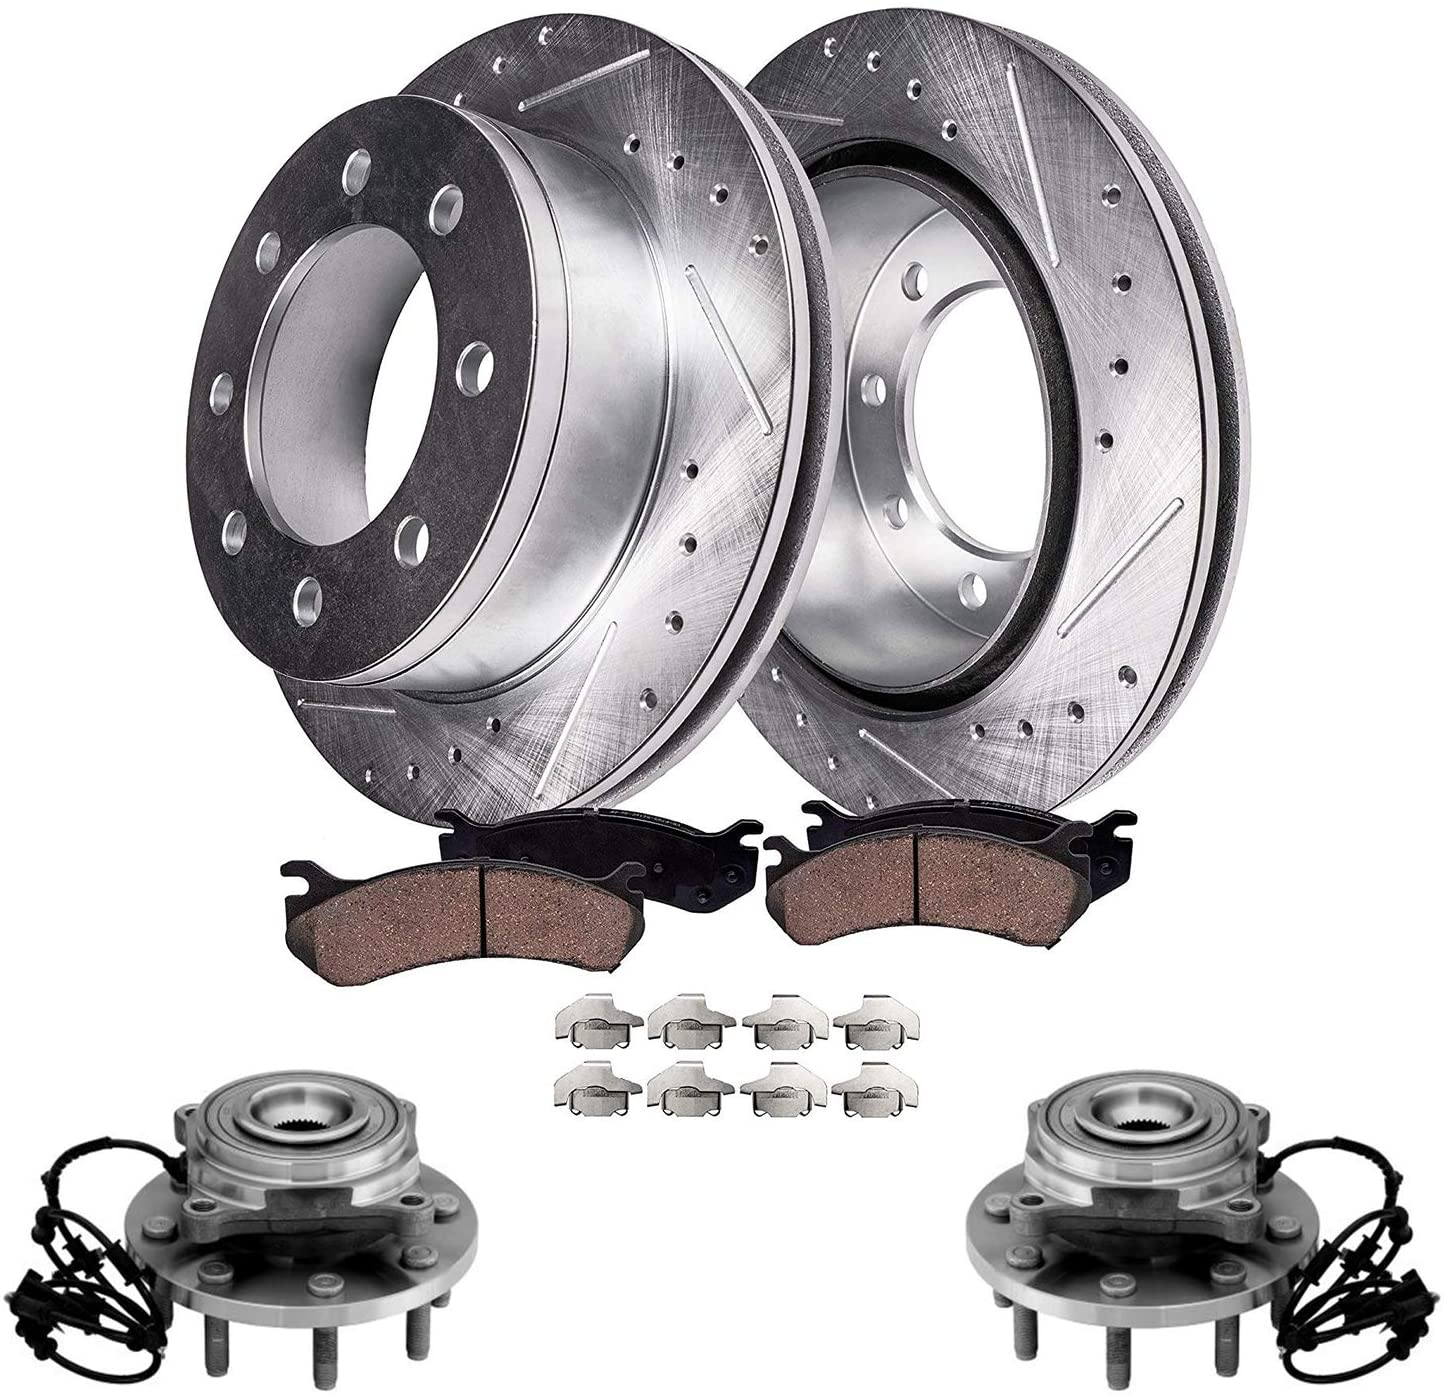 Detroit Axle Replacement for 2012 2013 Ram 2500 3500 [4wd] Front Drilled Brake Rotors w/Ceramic Pads + Wheel Hub & Bearing Assembly - 6pc